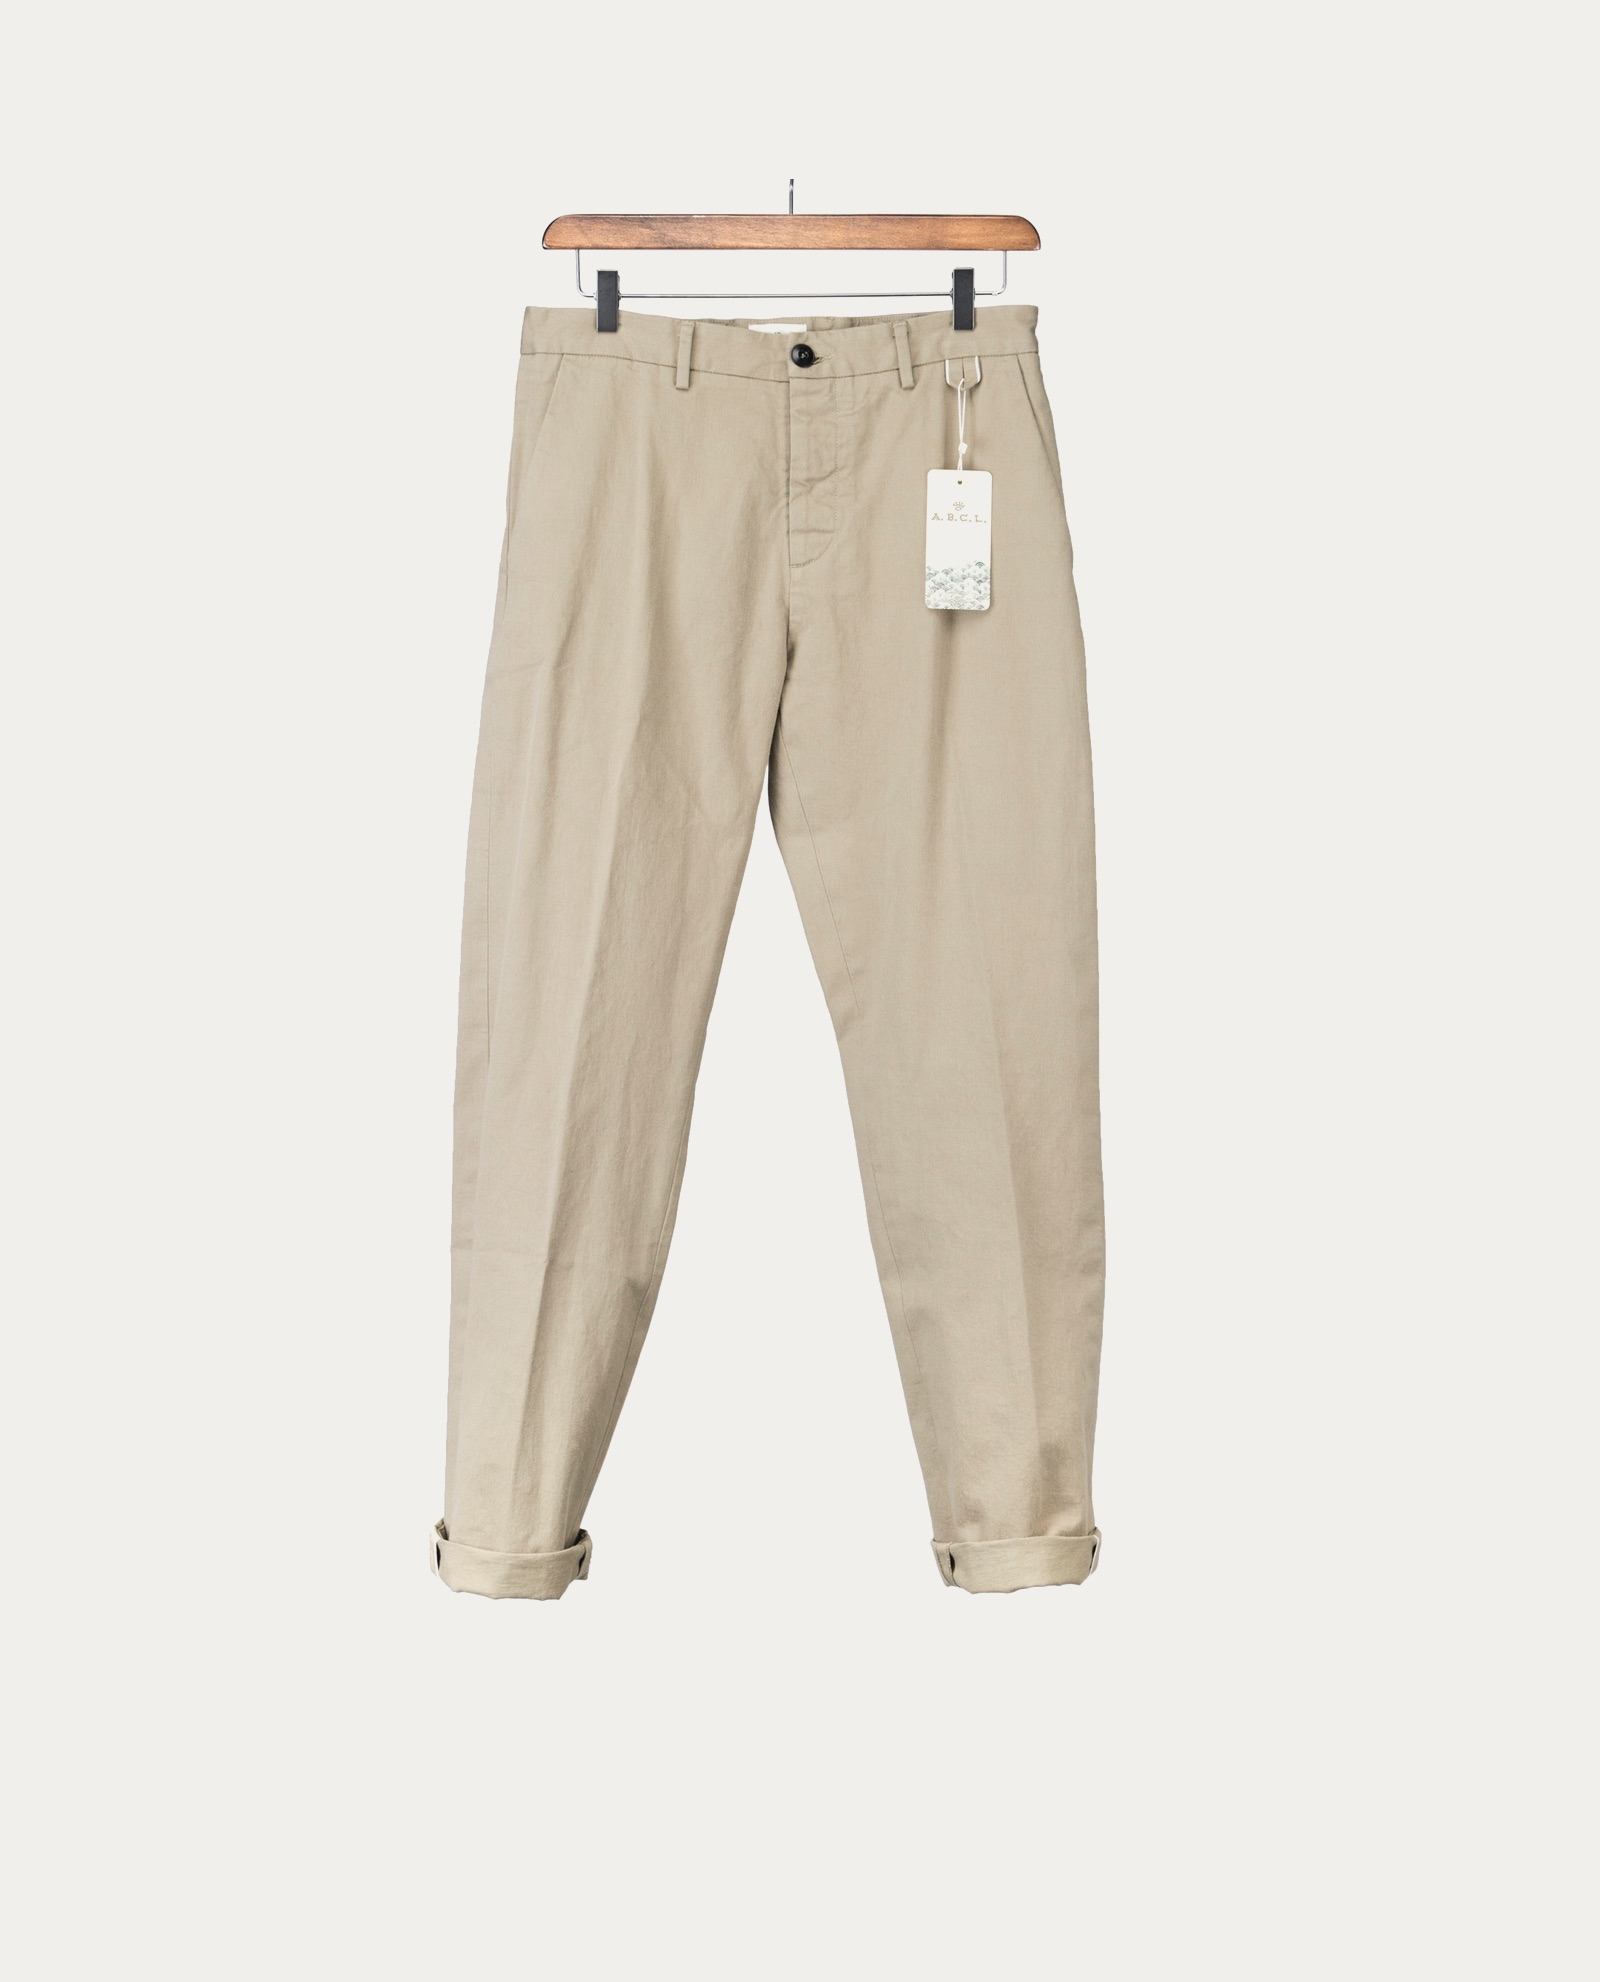 tonsor_cie_abcl_japan_chino_1400_selvedg_officier_beige